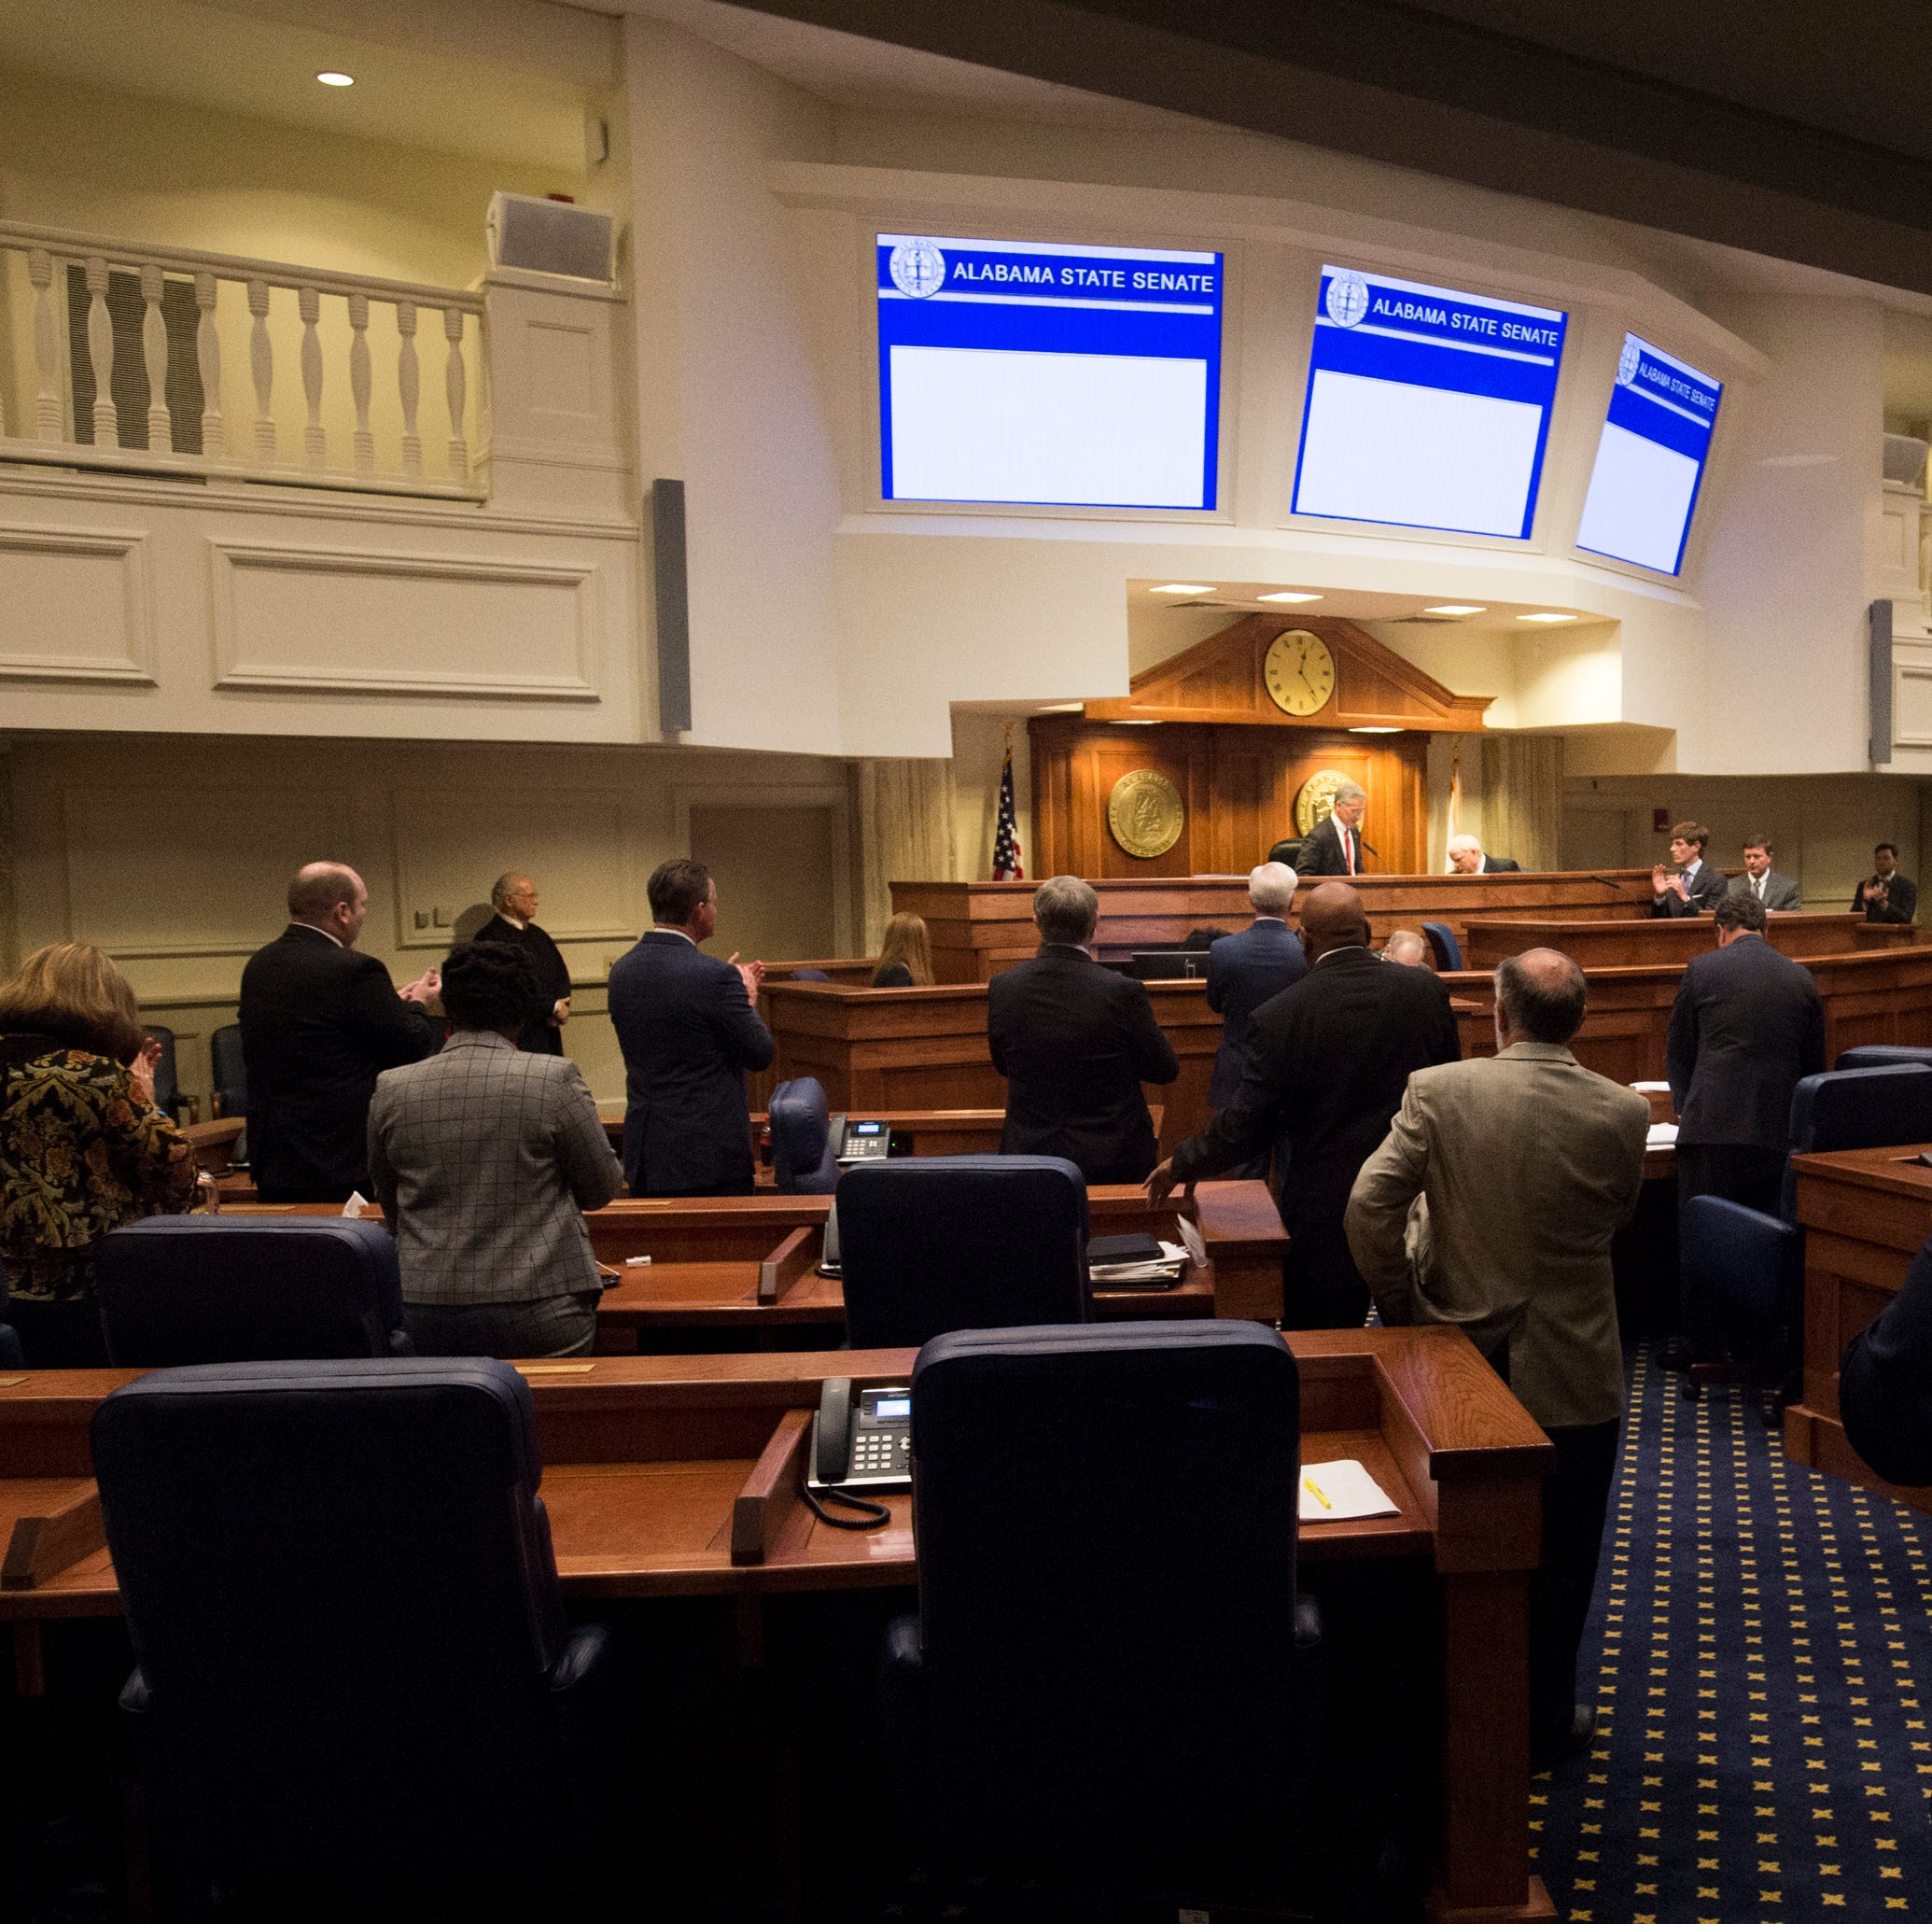 The Alabama State Senate during the 2019 Alabama Legislature's organizational session at the Alabama State House in Montgomery, Ala., on Tuesday, Jan. 8, 2019.